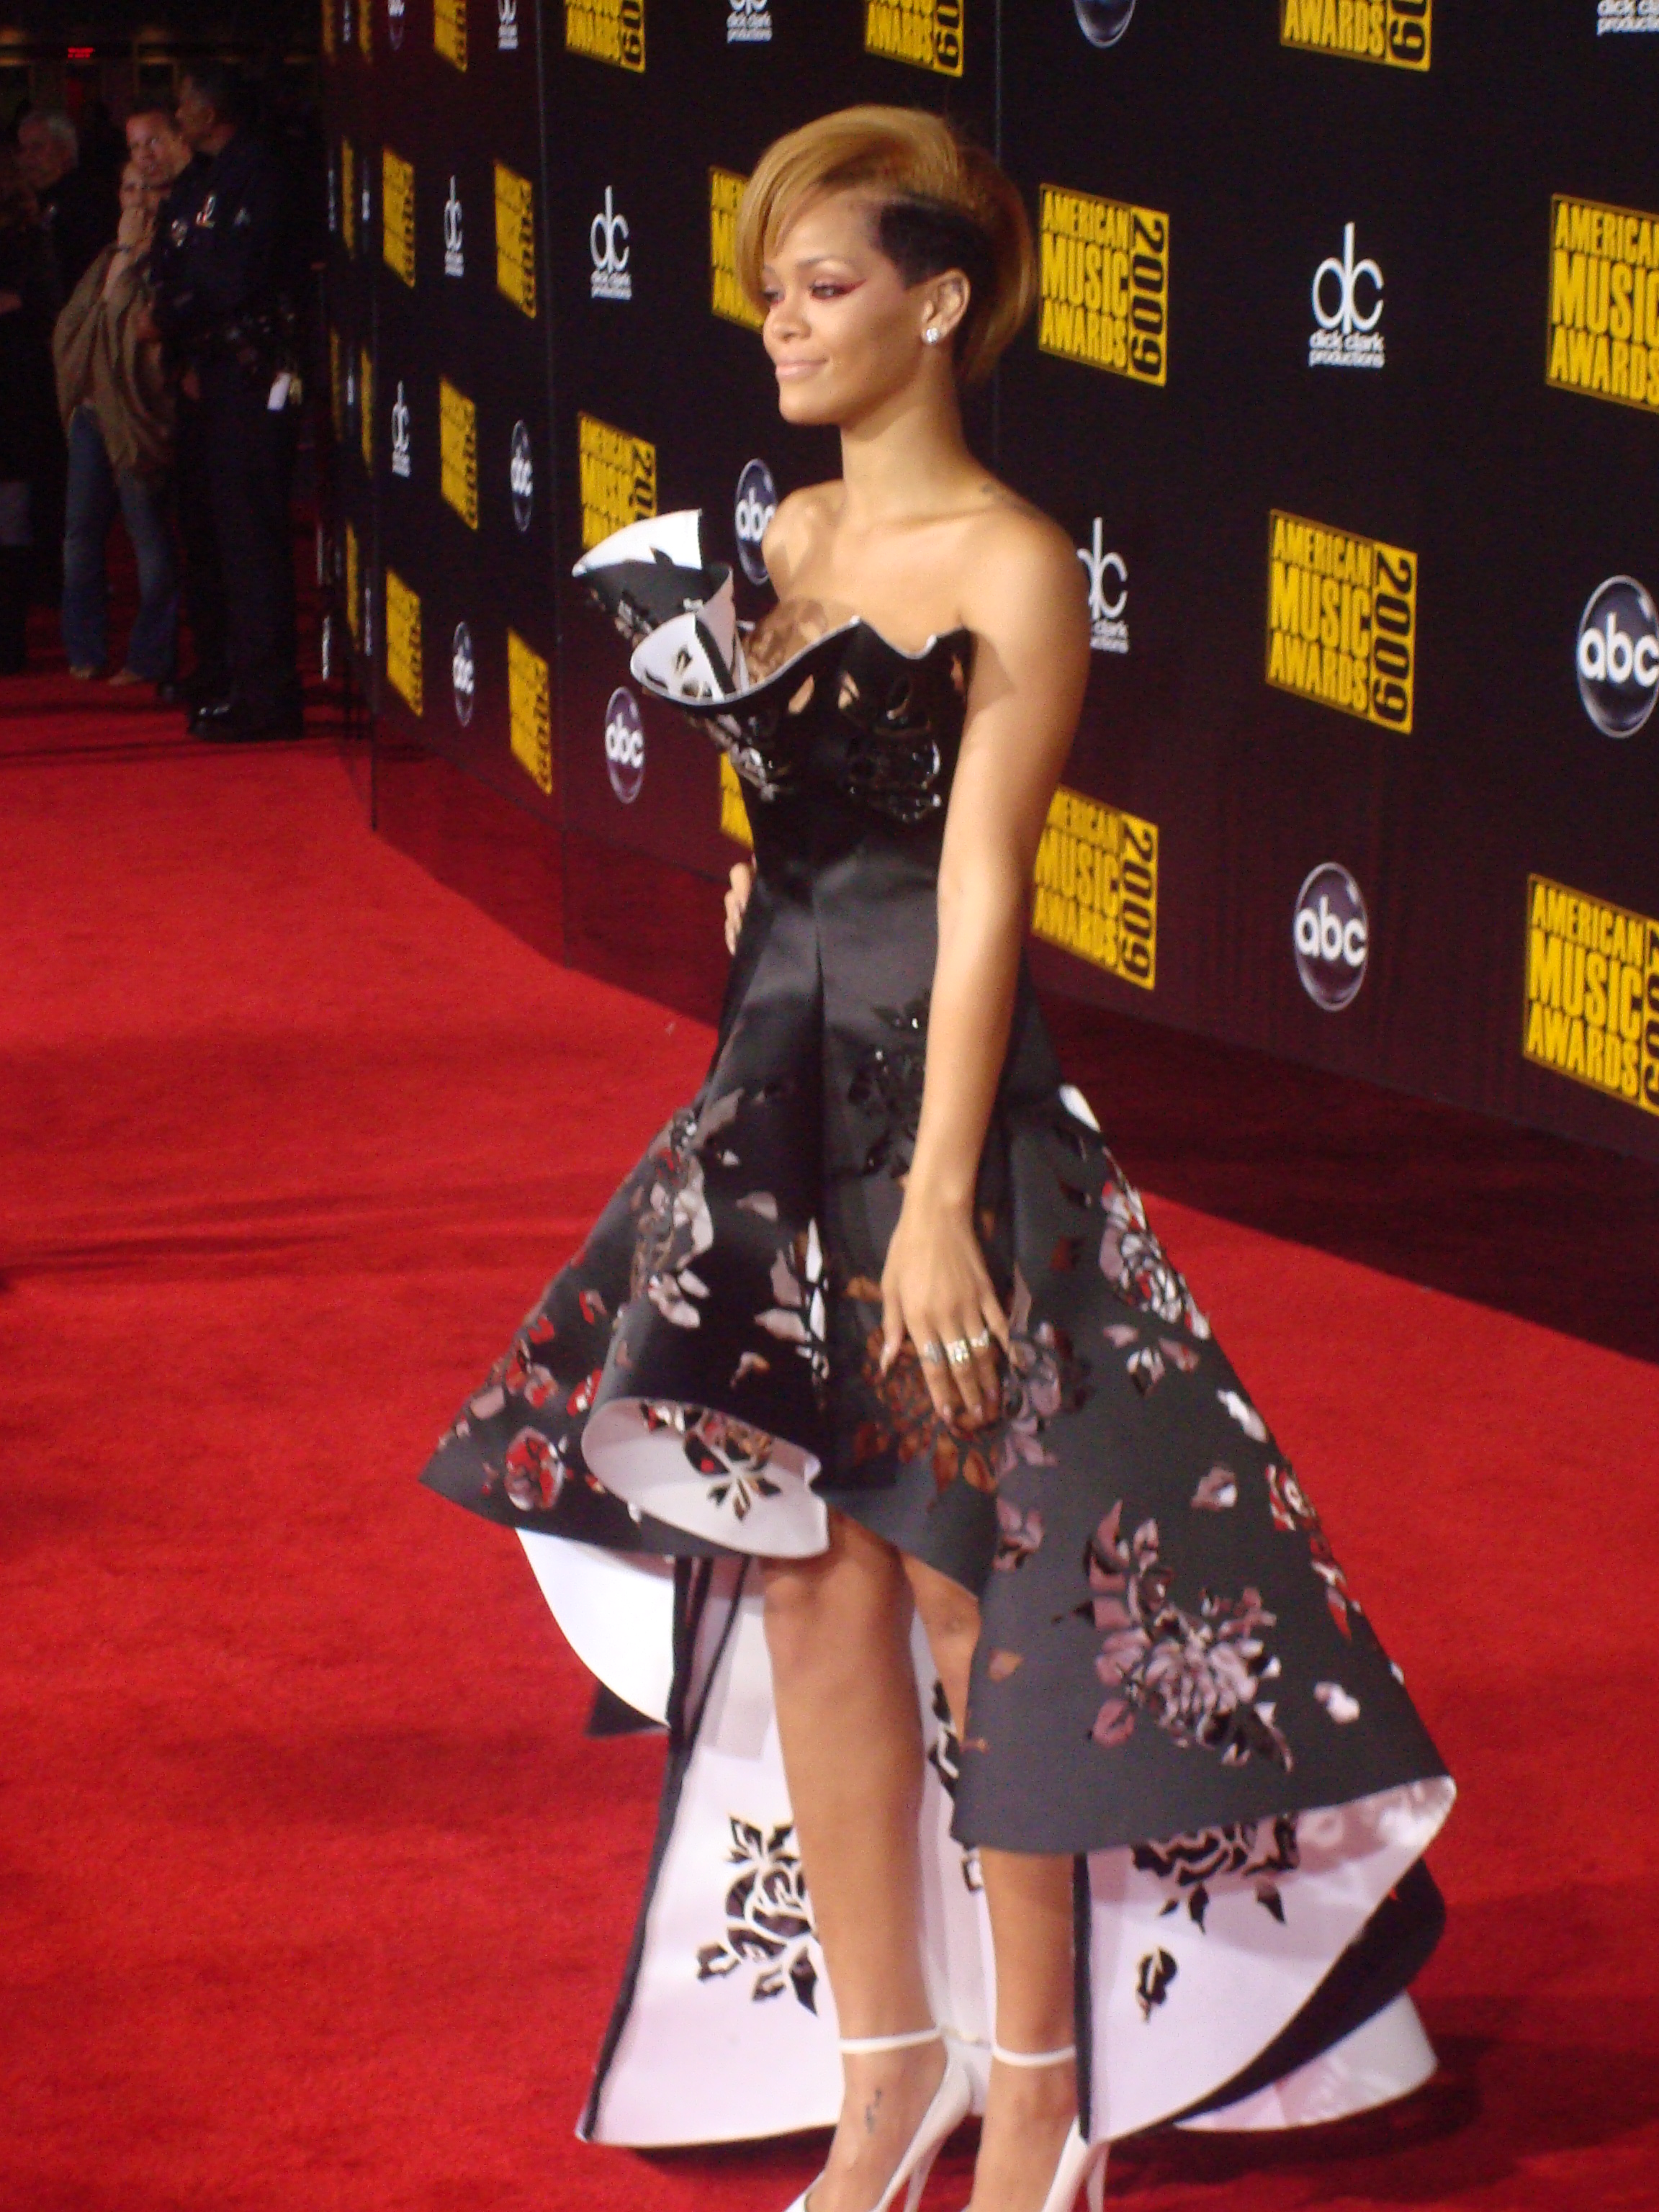 rihanna standing on a red carpet in an elaborate dress - Rihanna Lebenslauf